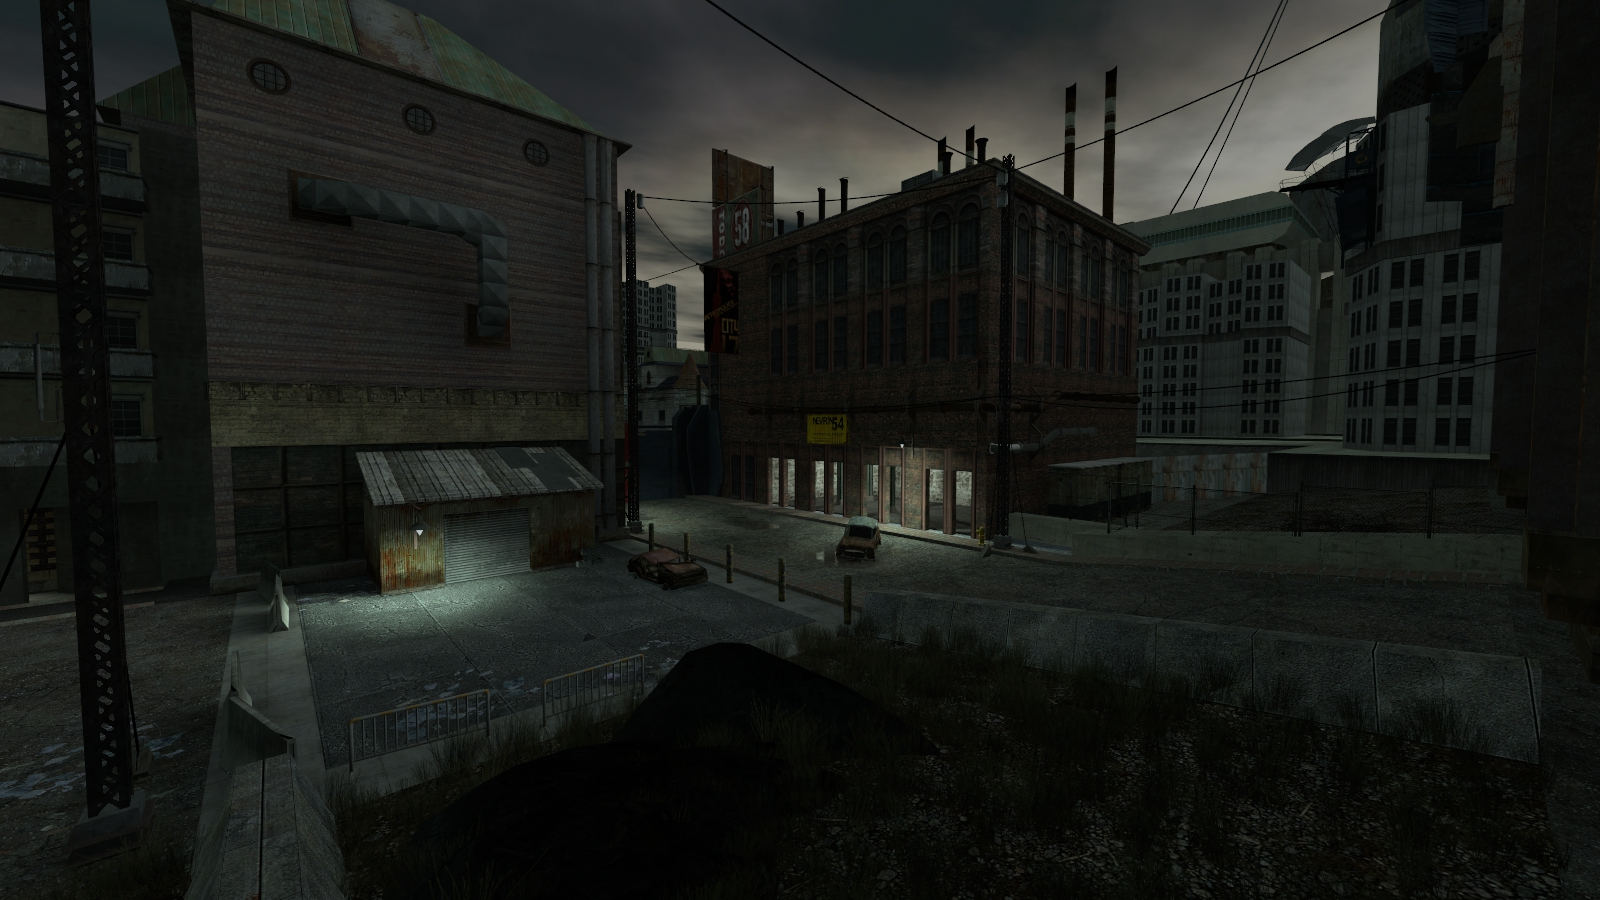 Half-Life 2. Dark Interval [MOD] - Half-Life 2 Арт, Мод, Скриншот